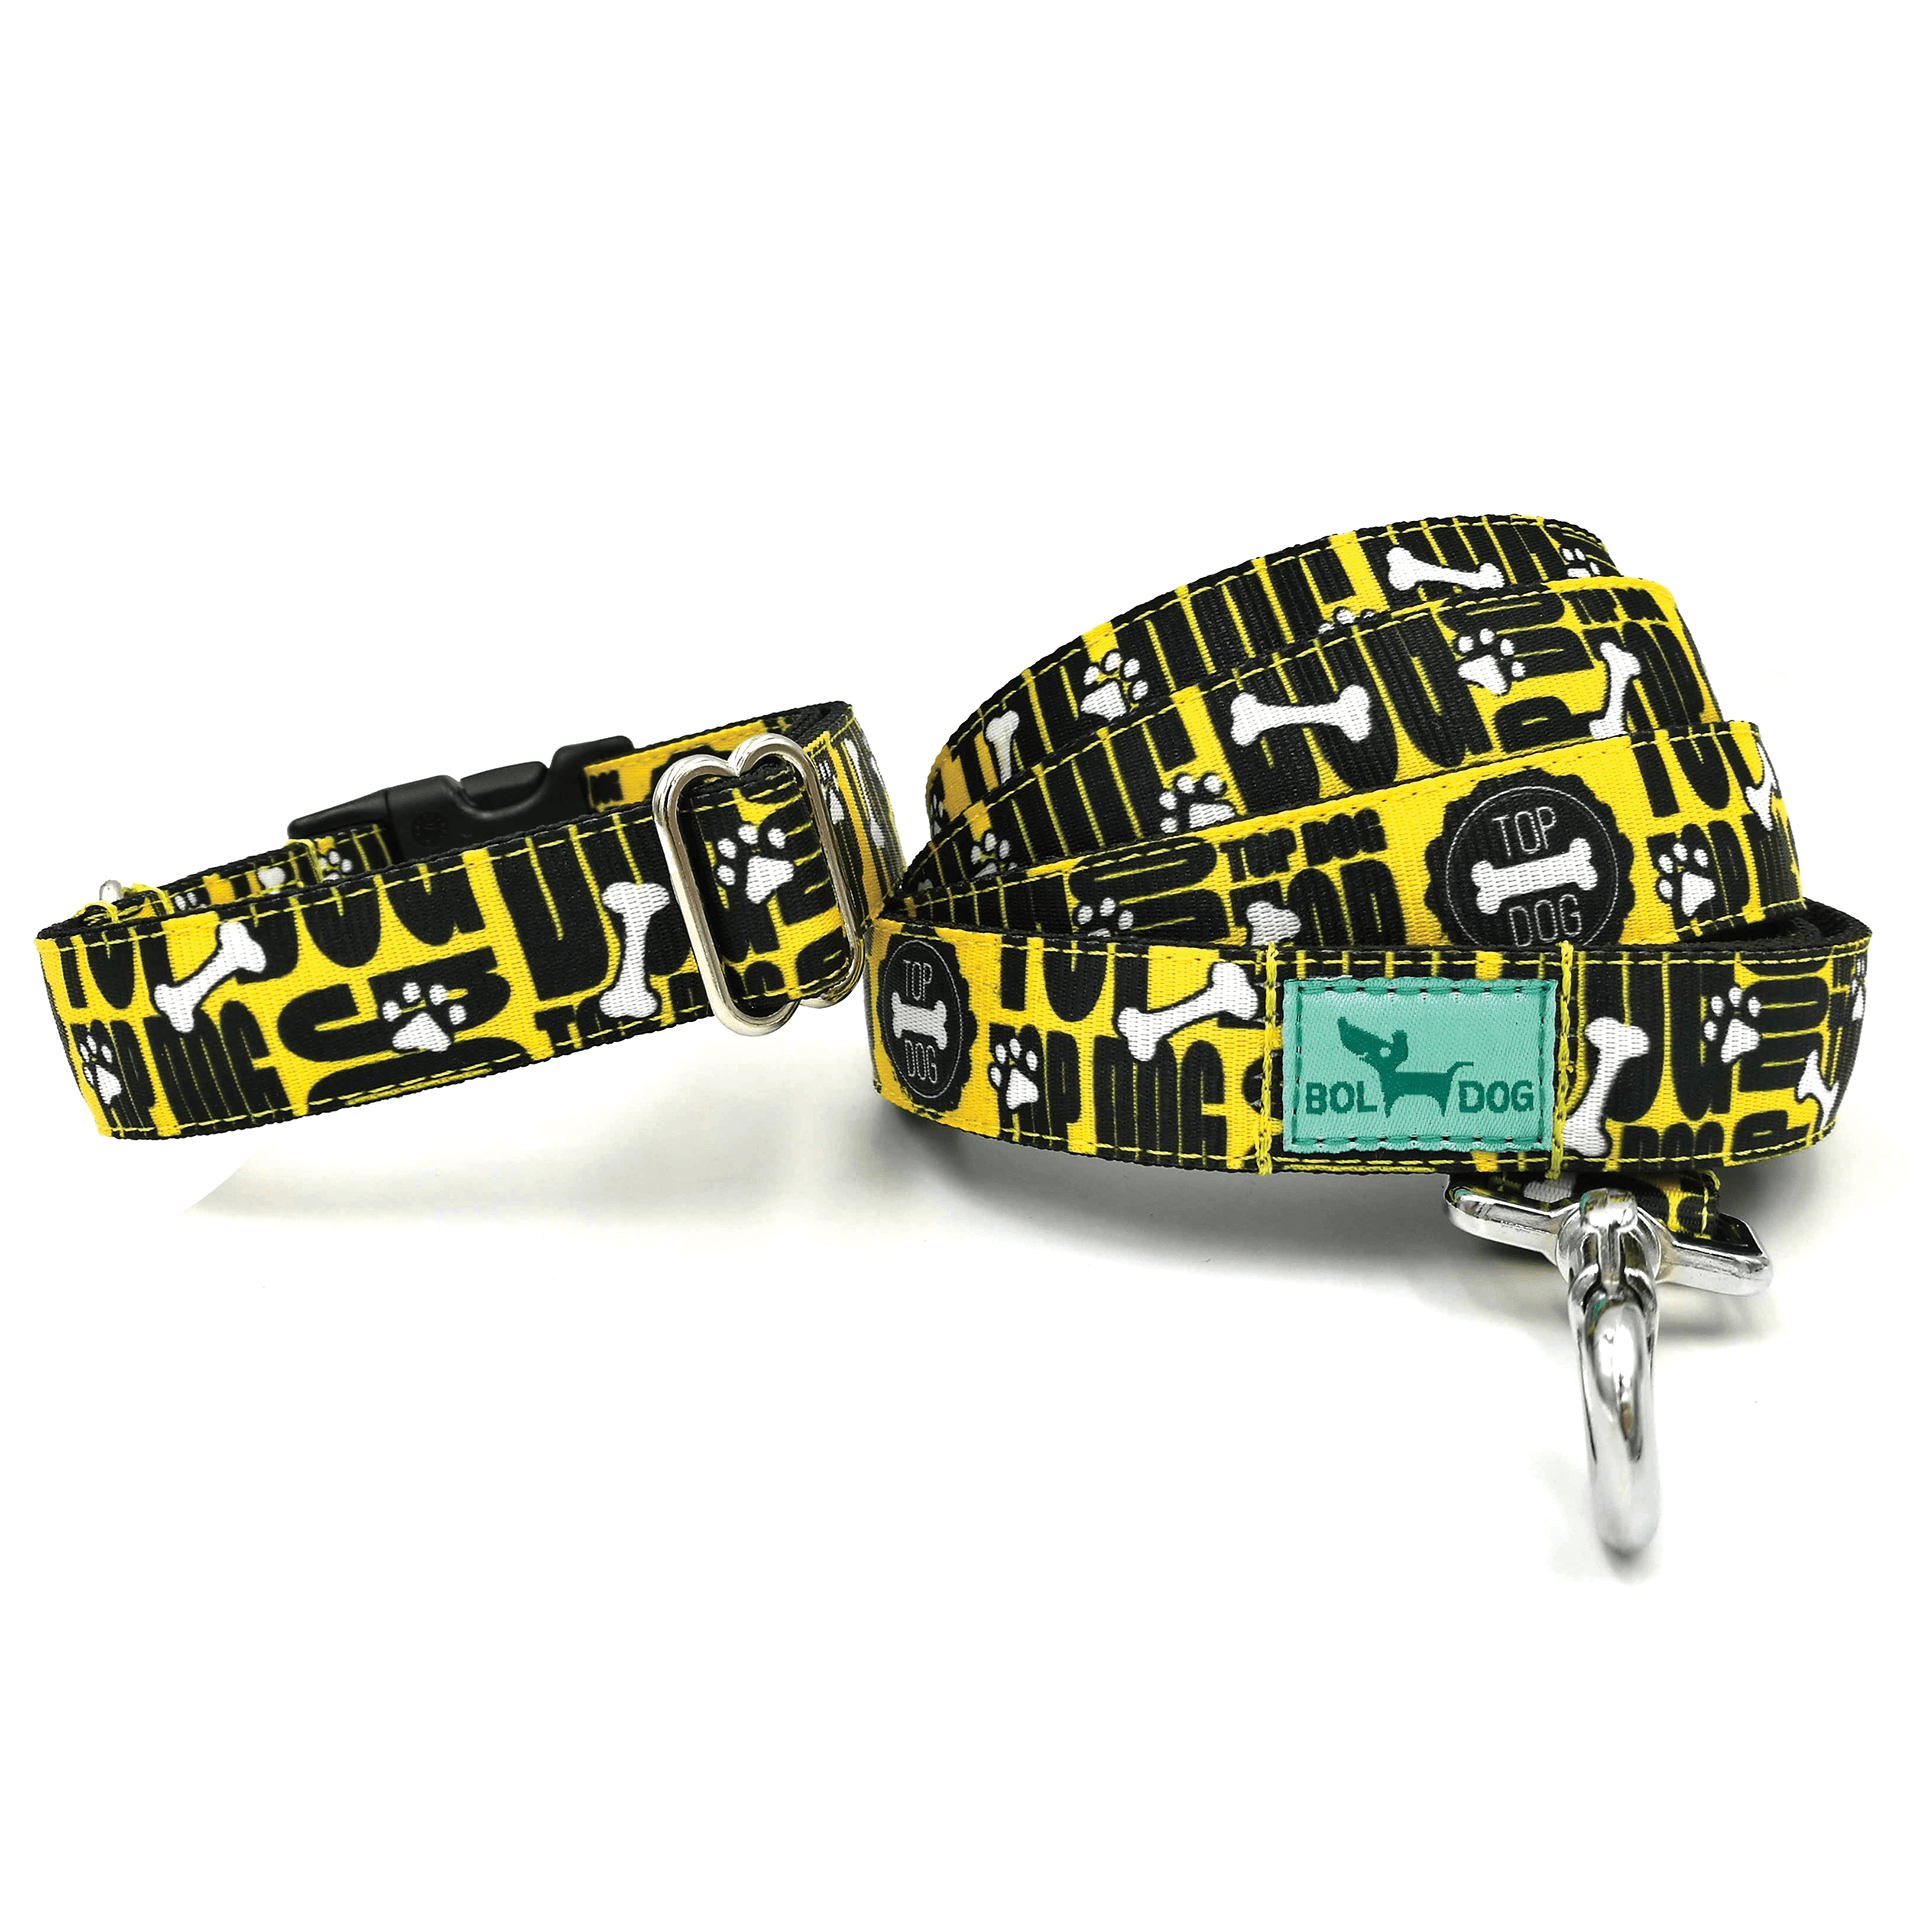 topdog blue and black patterned textile dog collar and leash set